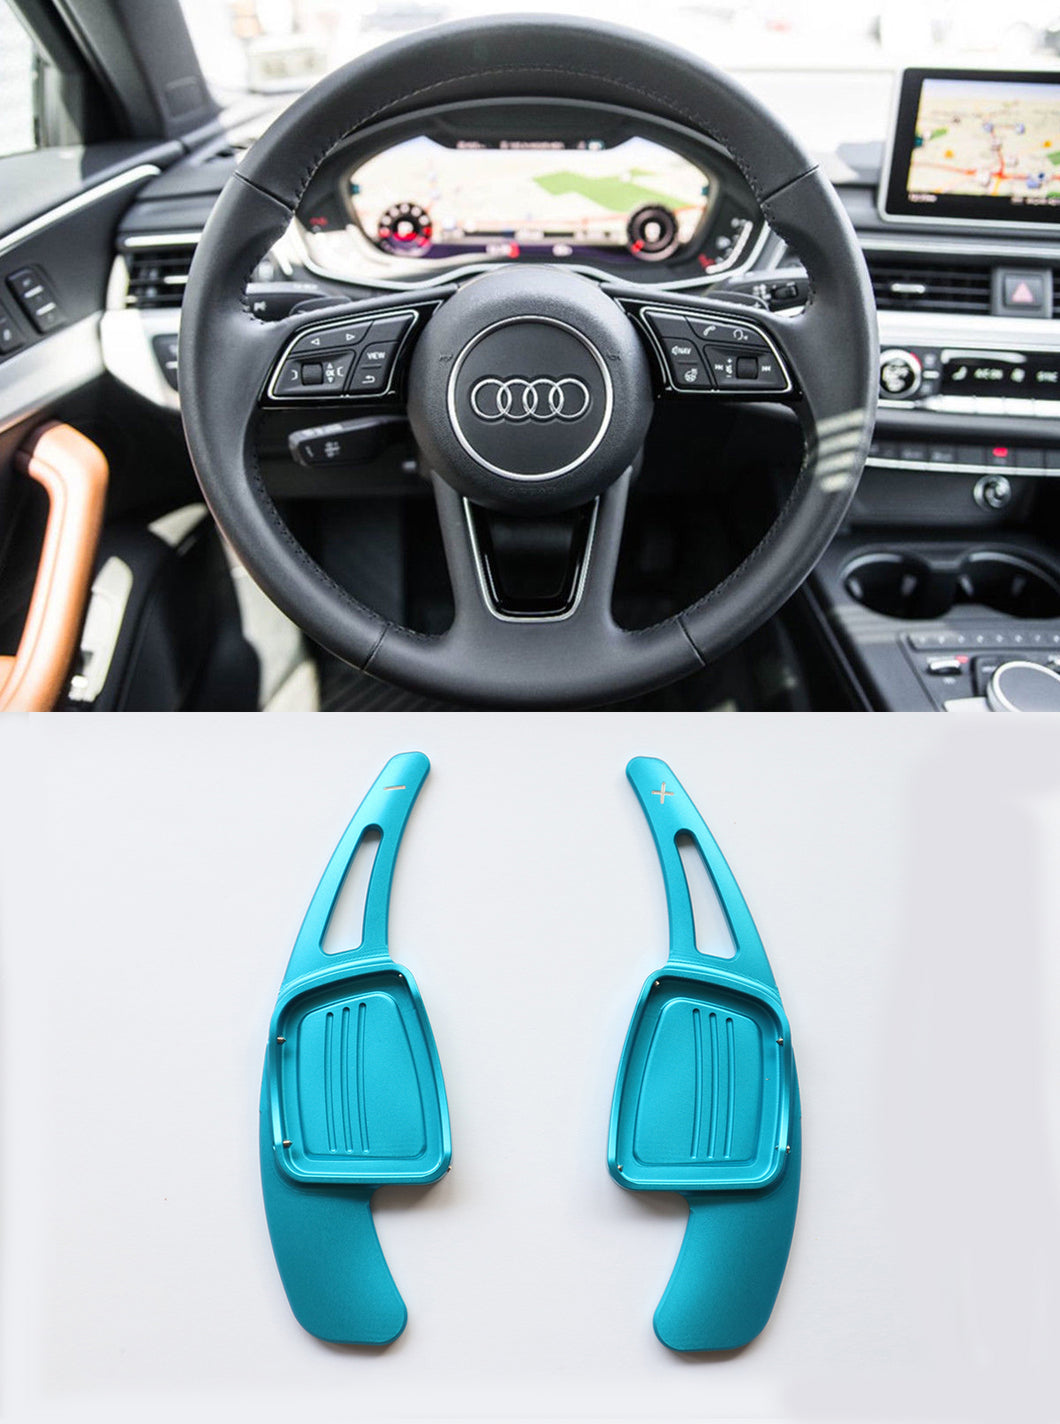 Alloy Made Steering Wheel DSG Paddle Shifter Extension for A3 A4L A5 Q7 TT TTS S4 Q2 S3 SQ 2016-2017 (Blue)